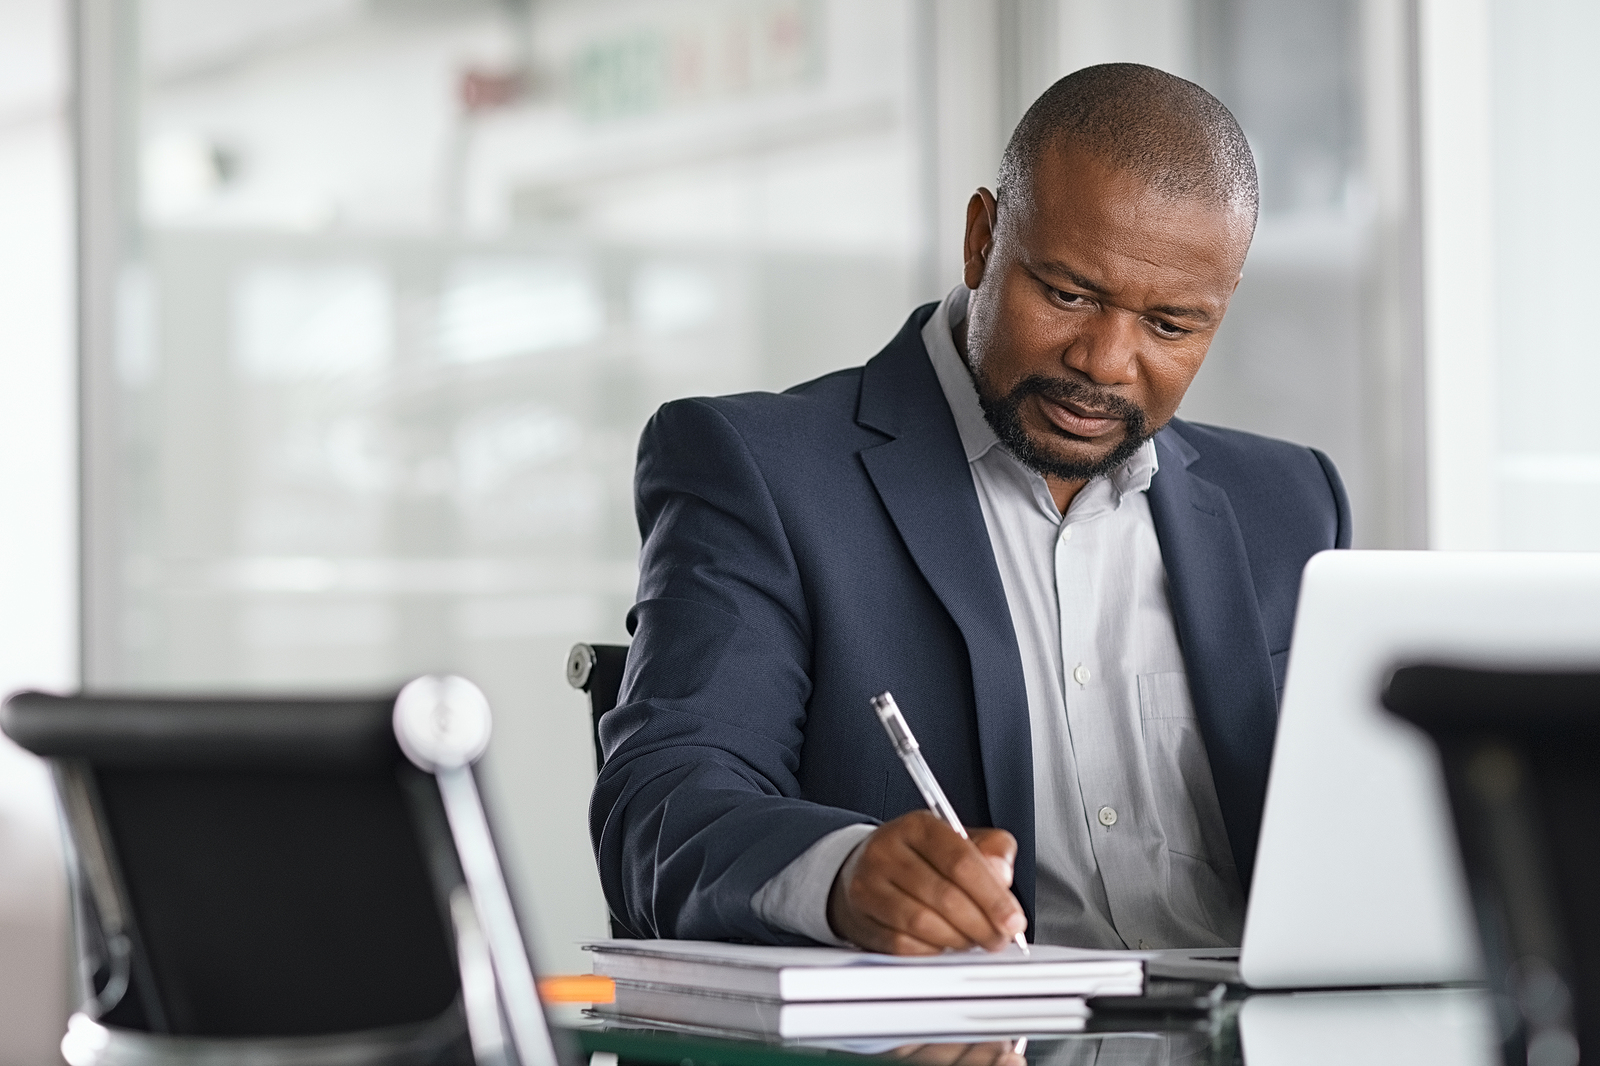 Black business professional man taking notes on a note pad with an open laptop in front of him.